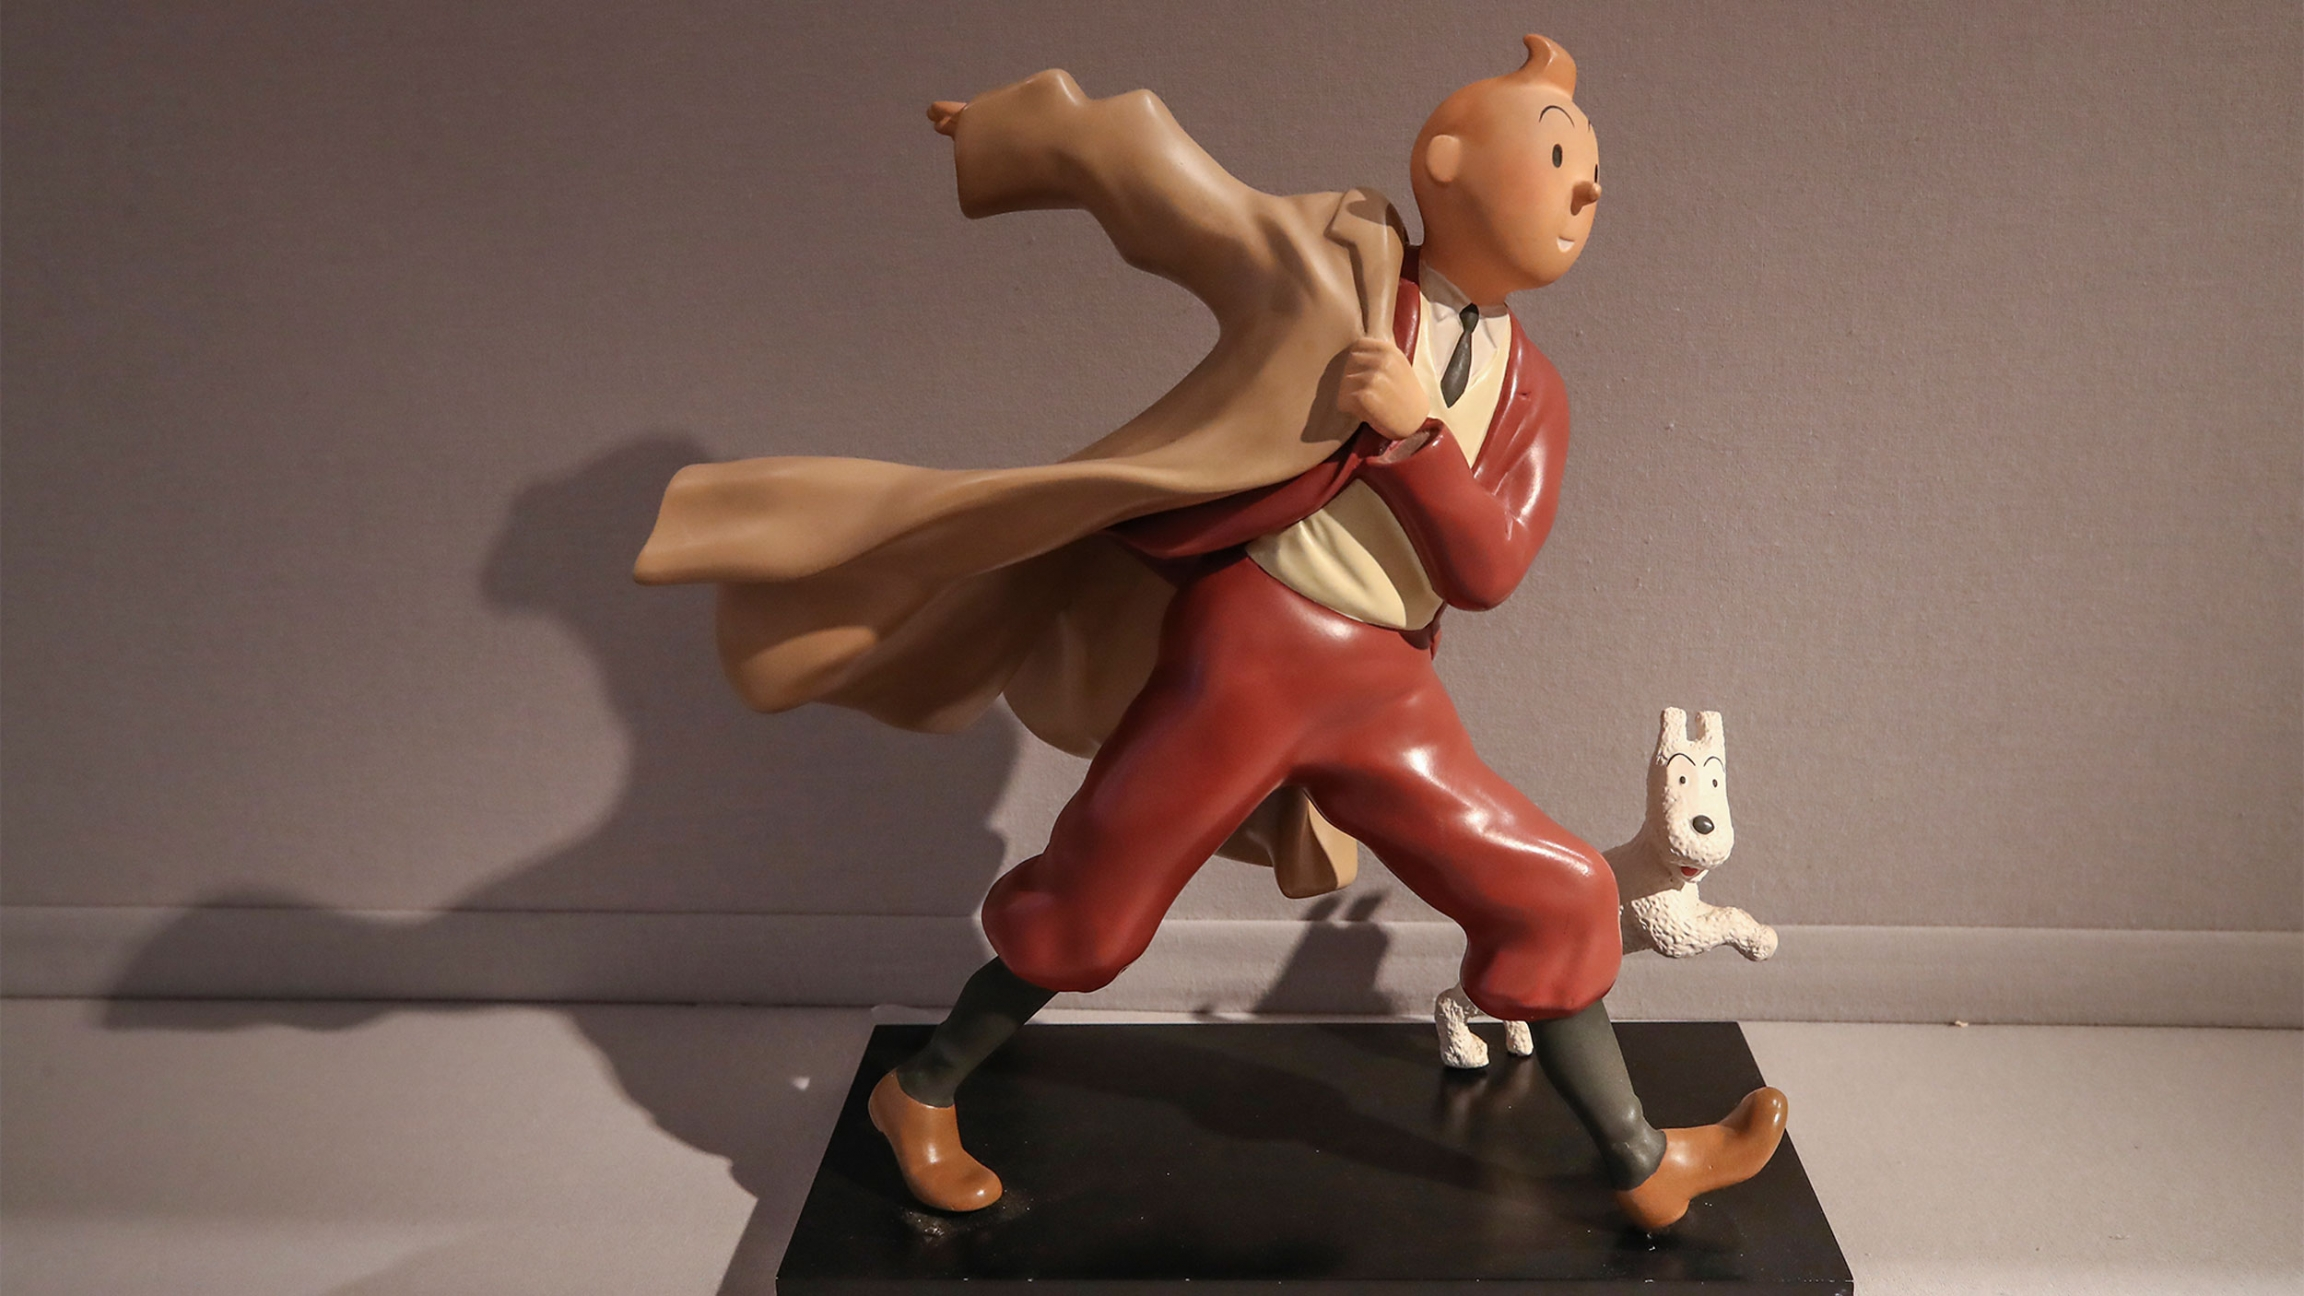 A 1988 polychrome resin sculpture is displayed of the comic character Tintin and his dog snowy